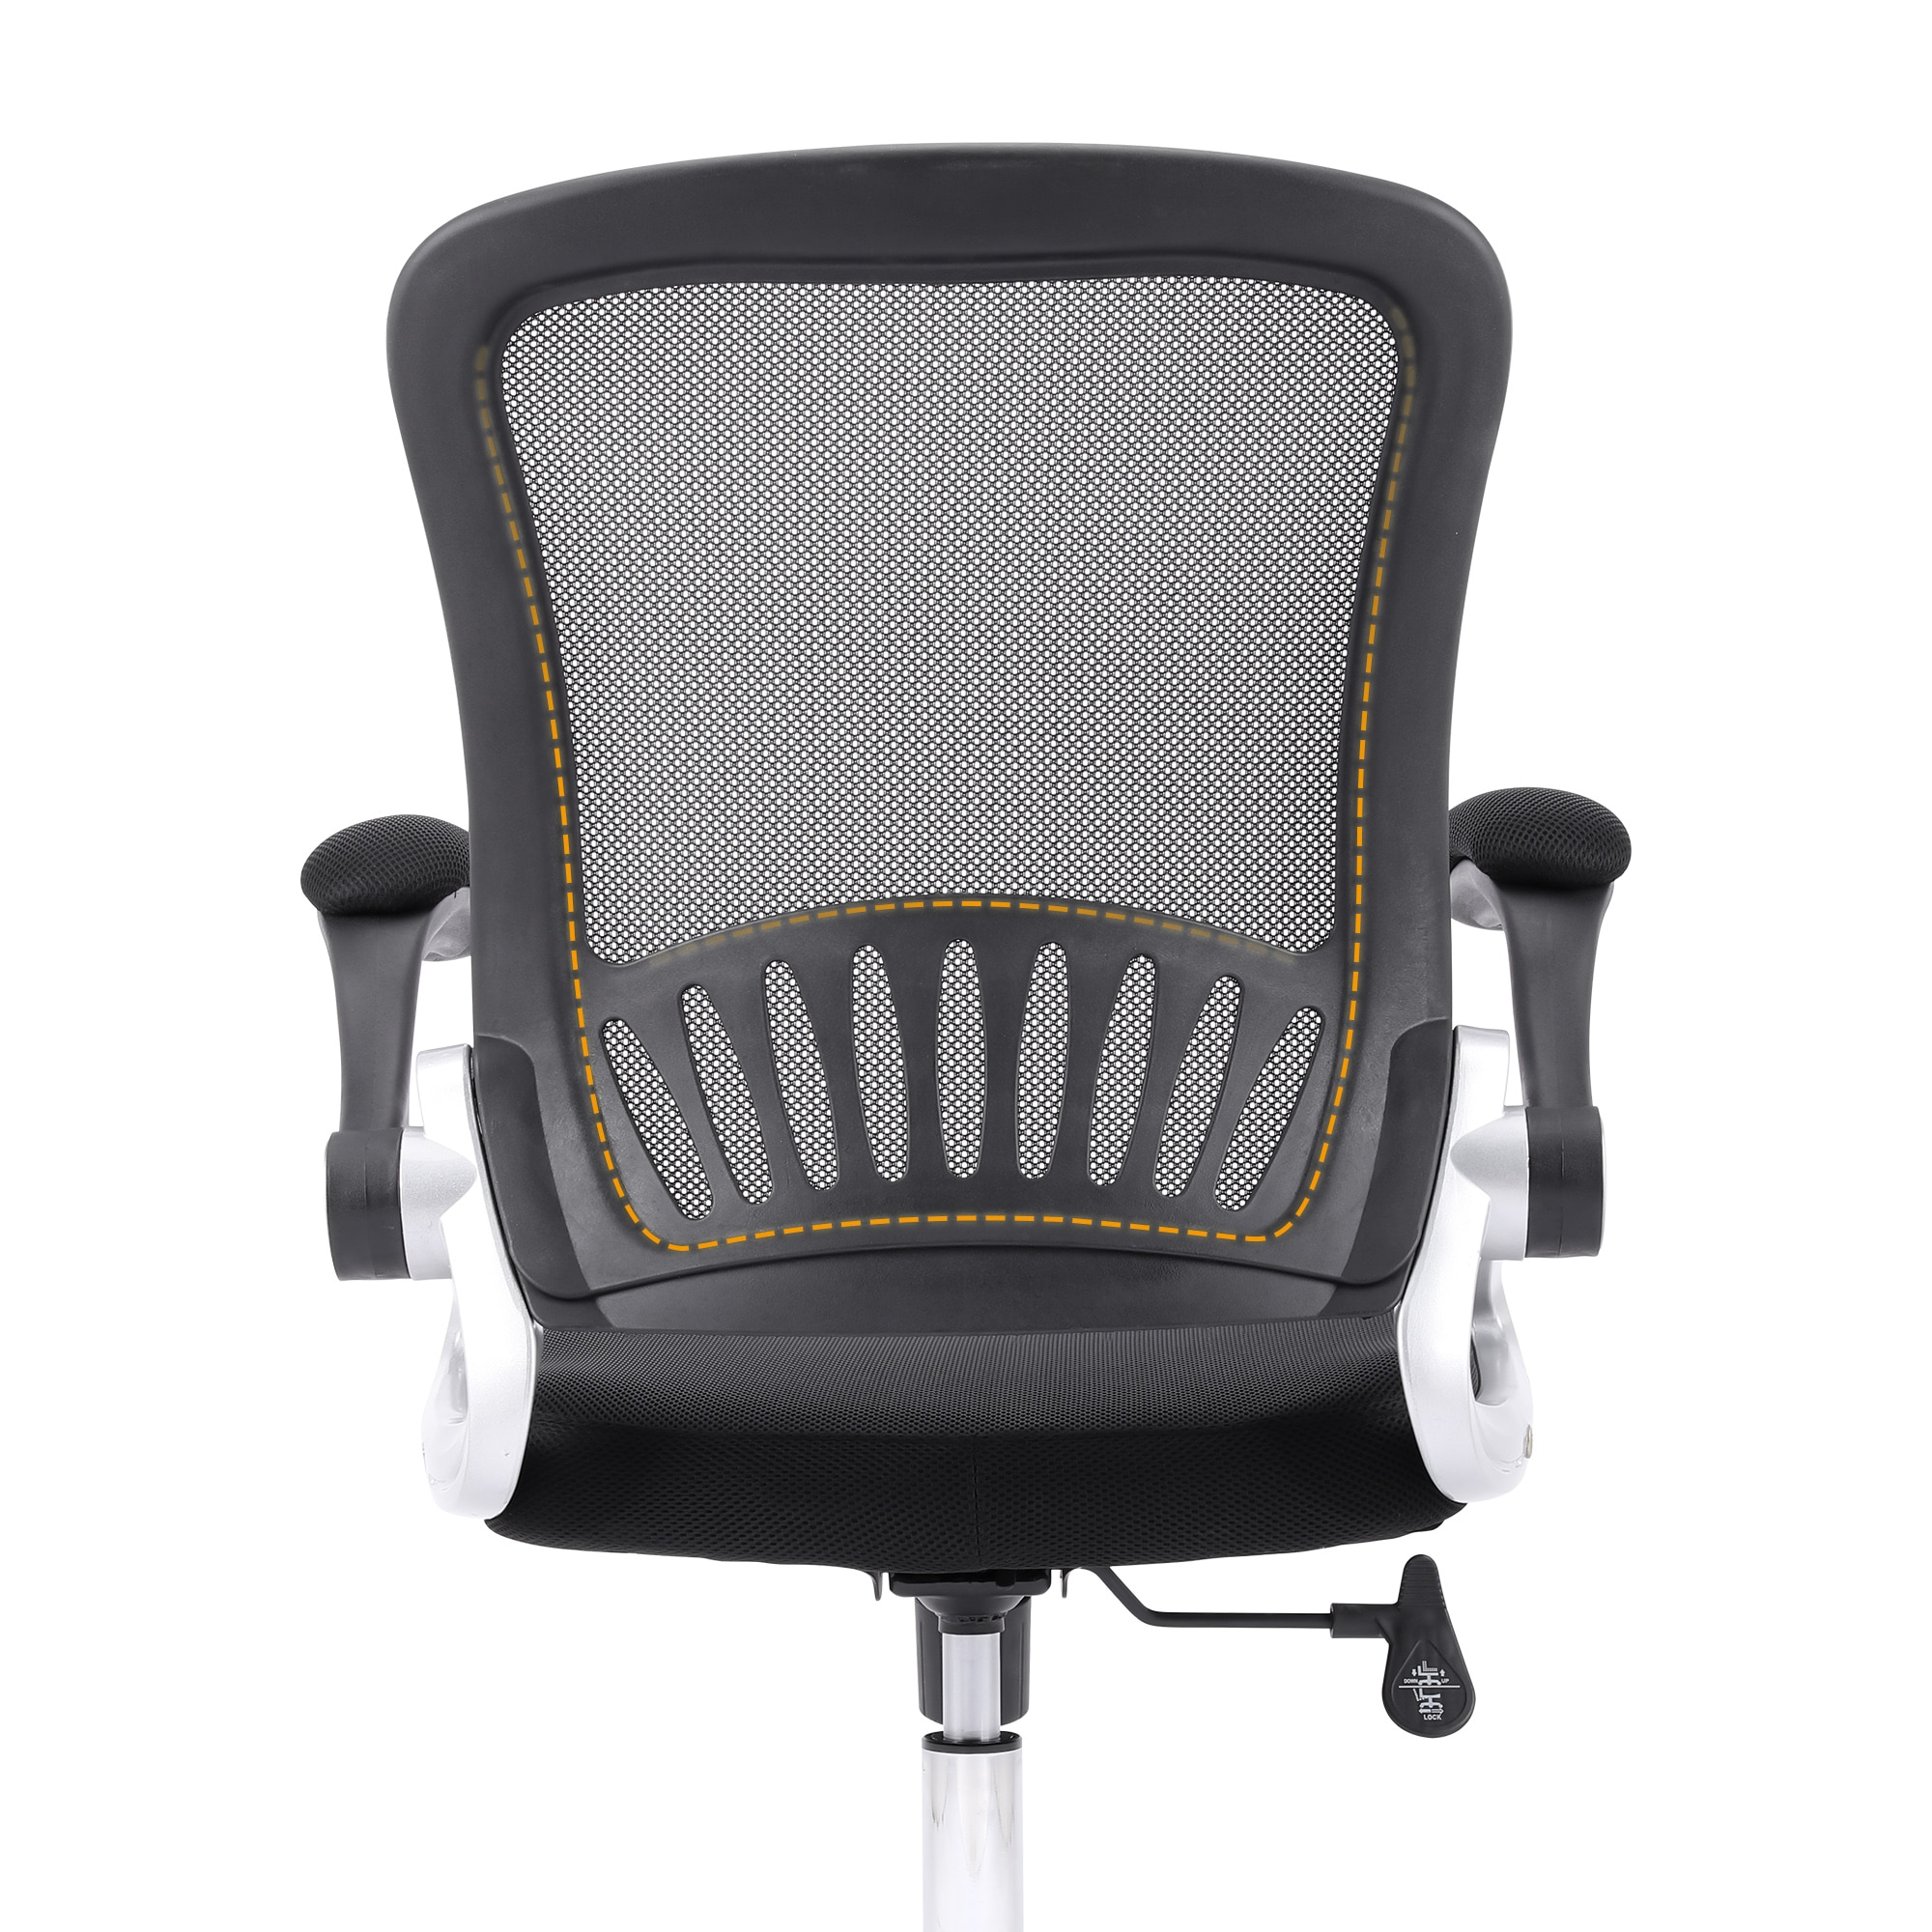 H0ceab6f4a7c54ad3a605f976827a6839d - Sigtua Swivel Office Chair Height-adjustable Desk Chair Breathable PC Chair Comfortable Ergonomic Executive Computer Chair Black